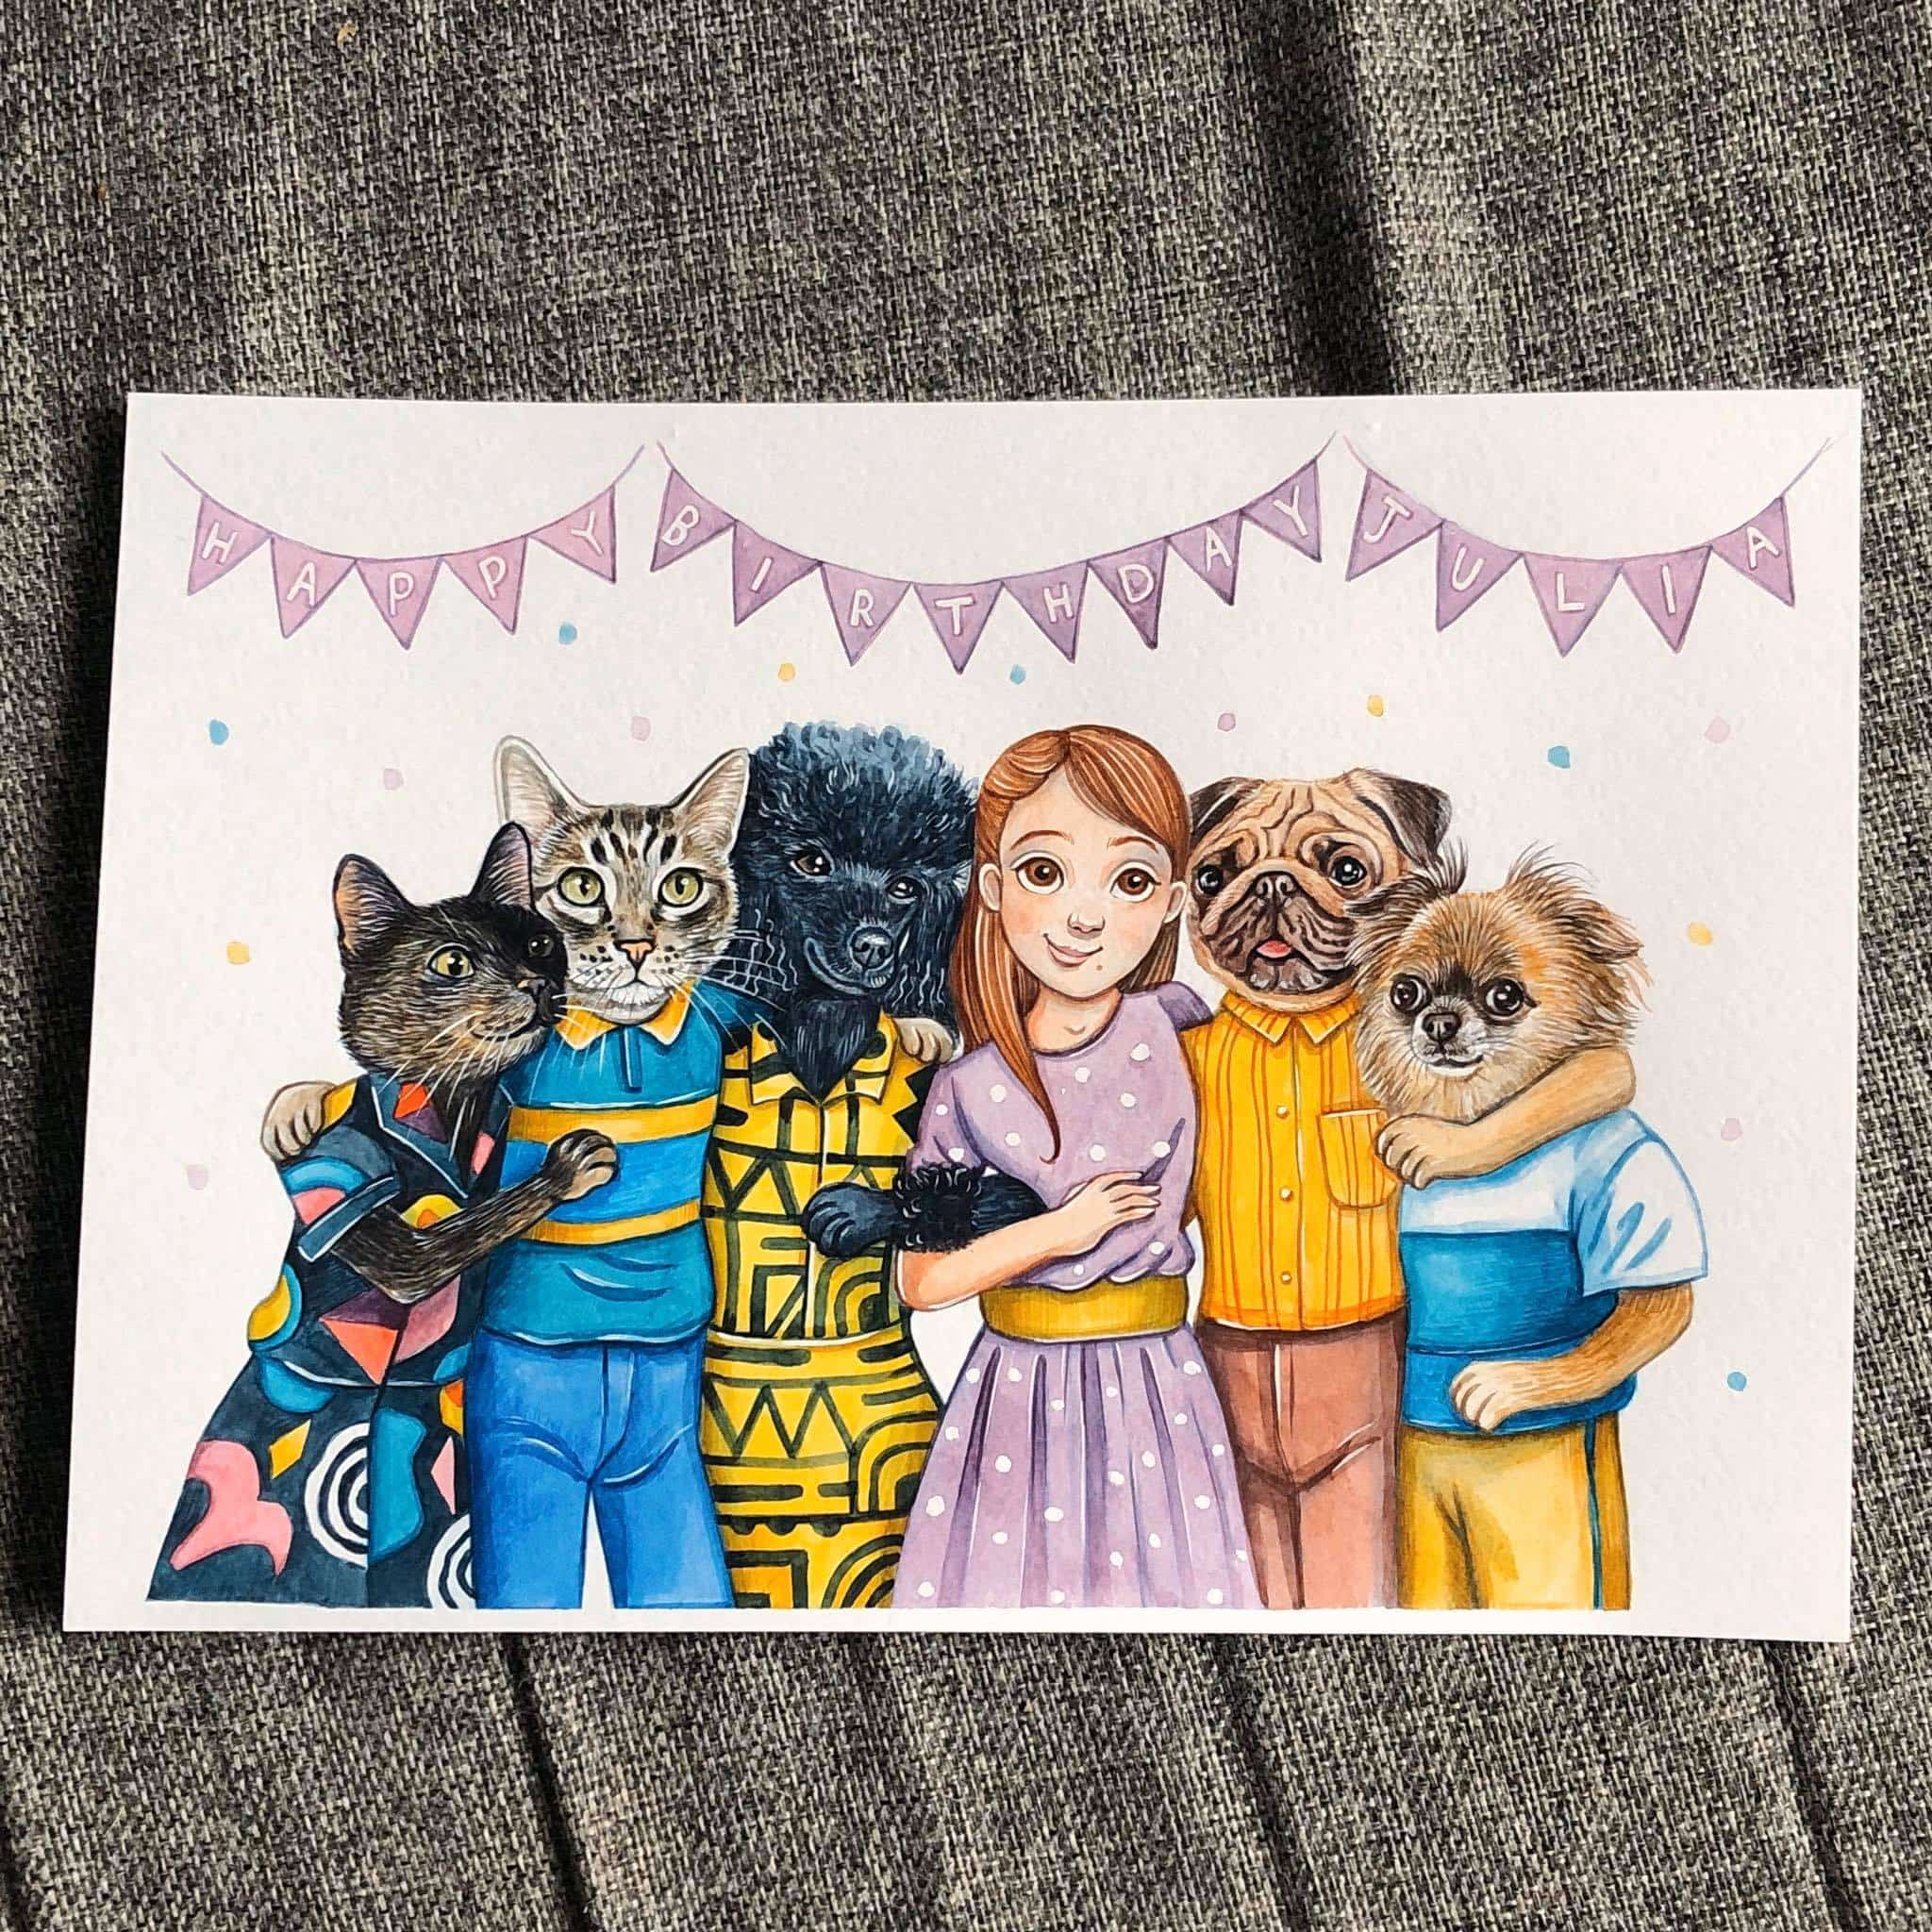 Aquarelle painting of an animal family from Valeria Susak